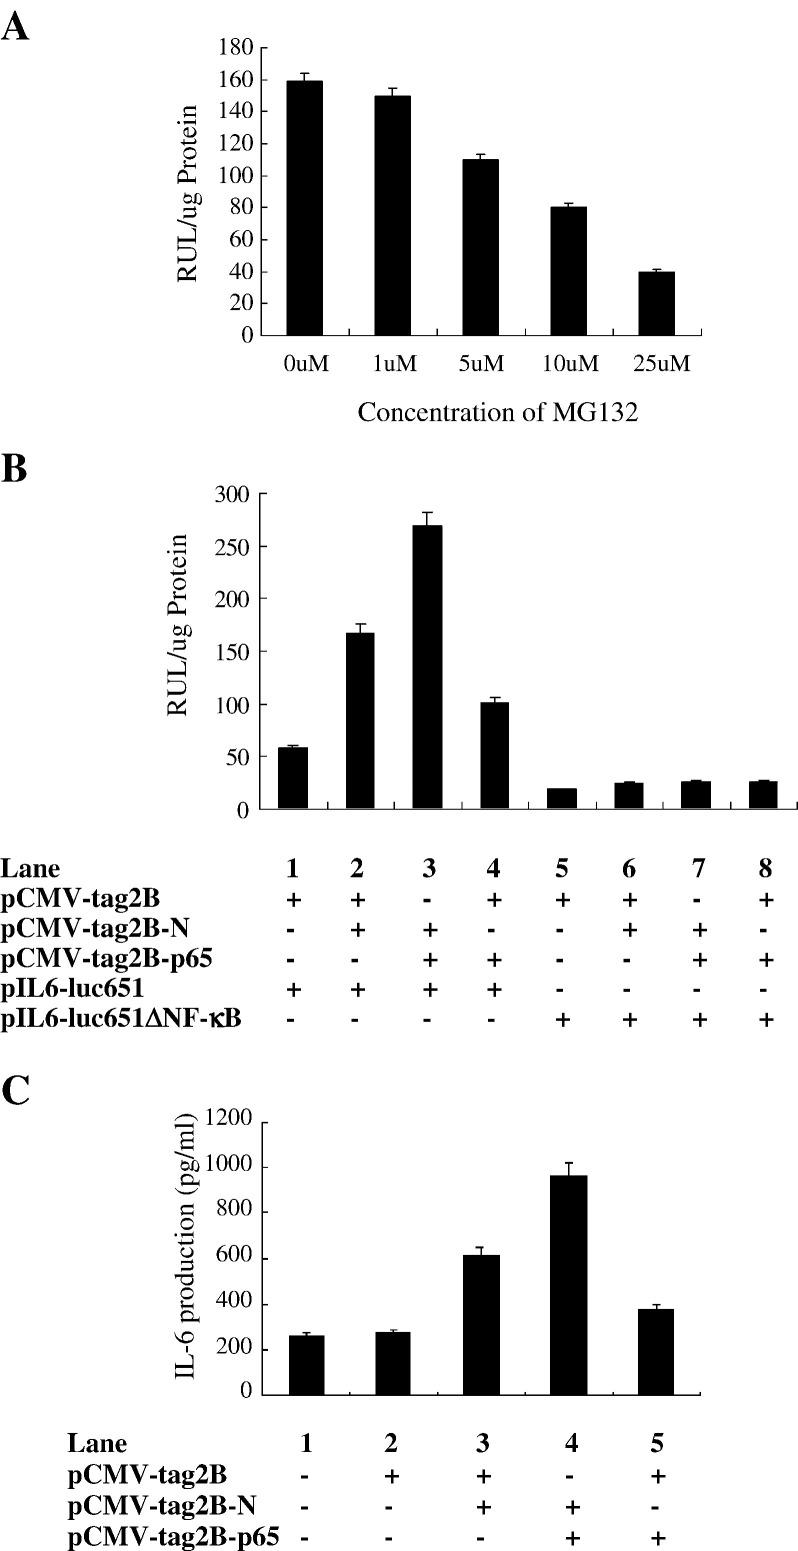 Determination of the role of NF-κB in the expression of IL-6 regulated by N protein. (A) A549 cells were co-transfected with pCMV-Tag2B-N and pIL6-luc-651 followed by the treatment with MG-132 at different concentrations as indicated for 24h. Treated cells were then lysed and luciferase activity was measured. (B) A549 cells were co-transfected with pIL6-luc-651 (lanes 1–4) or pIL6-luc-651ΔNF-κB (lanes 5, 6, 7, and 8), pCMV-Tag2B-N (lanes 2, 3, 6, and 7) or pCMV-Tag2B (lanes 1, 2, 4–6, and 8), and pCMV-Tag2B-p65 (lanes 3, 4, 7, and 8), respectively. Transfected cells were then lysed and luciferase activity was measured. (C) A549 cells were transfected with pCMV-Tag2B (lanes 2 and 3), or pCMV-Tag2B-N (lanes 3 and 4), or pCMV-Tag2B-p65 (lanes 4 and 5). Transfected cells were lysed and the levels of IL-6 protein produced were then measured by ELISA using anti-IL-6 antibody. The results were expressed as mean + S.D. of three independent experiments.